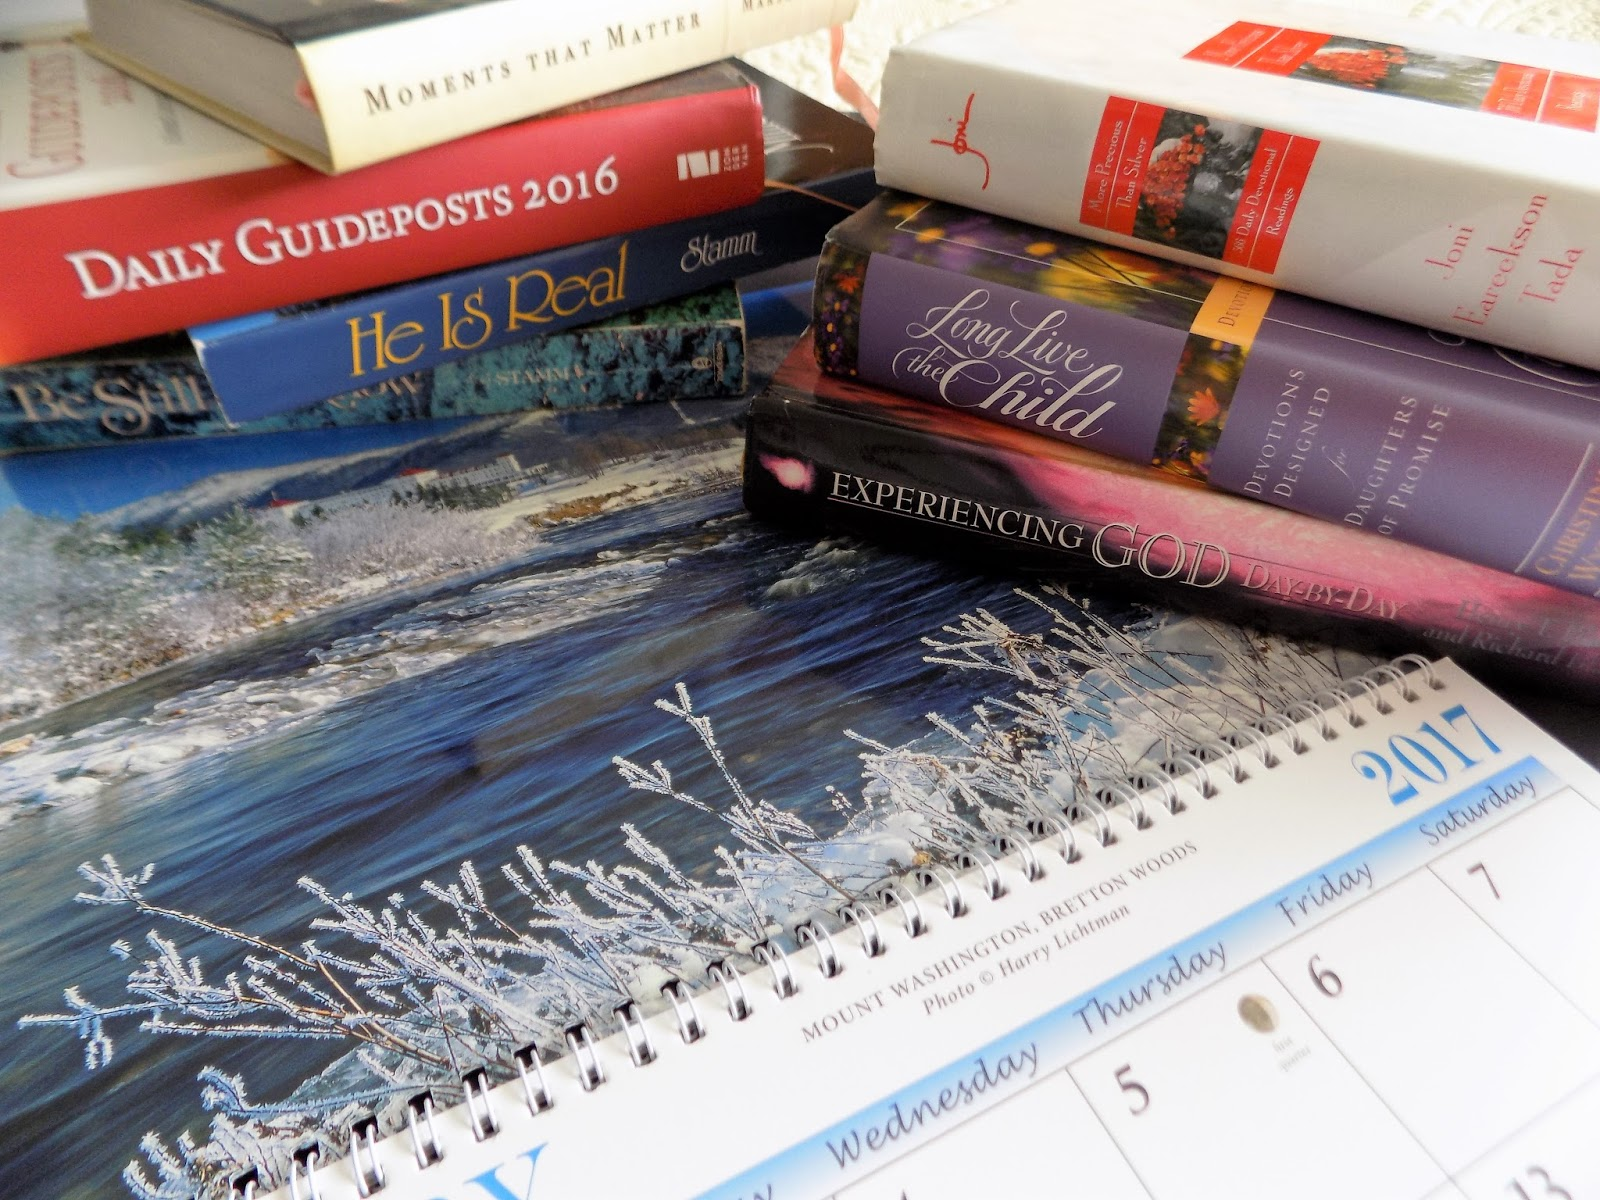 The Suitcase Journals: 9 Daily Devotionals and the Title I Chose for ...